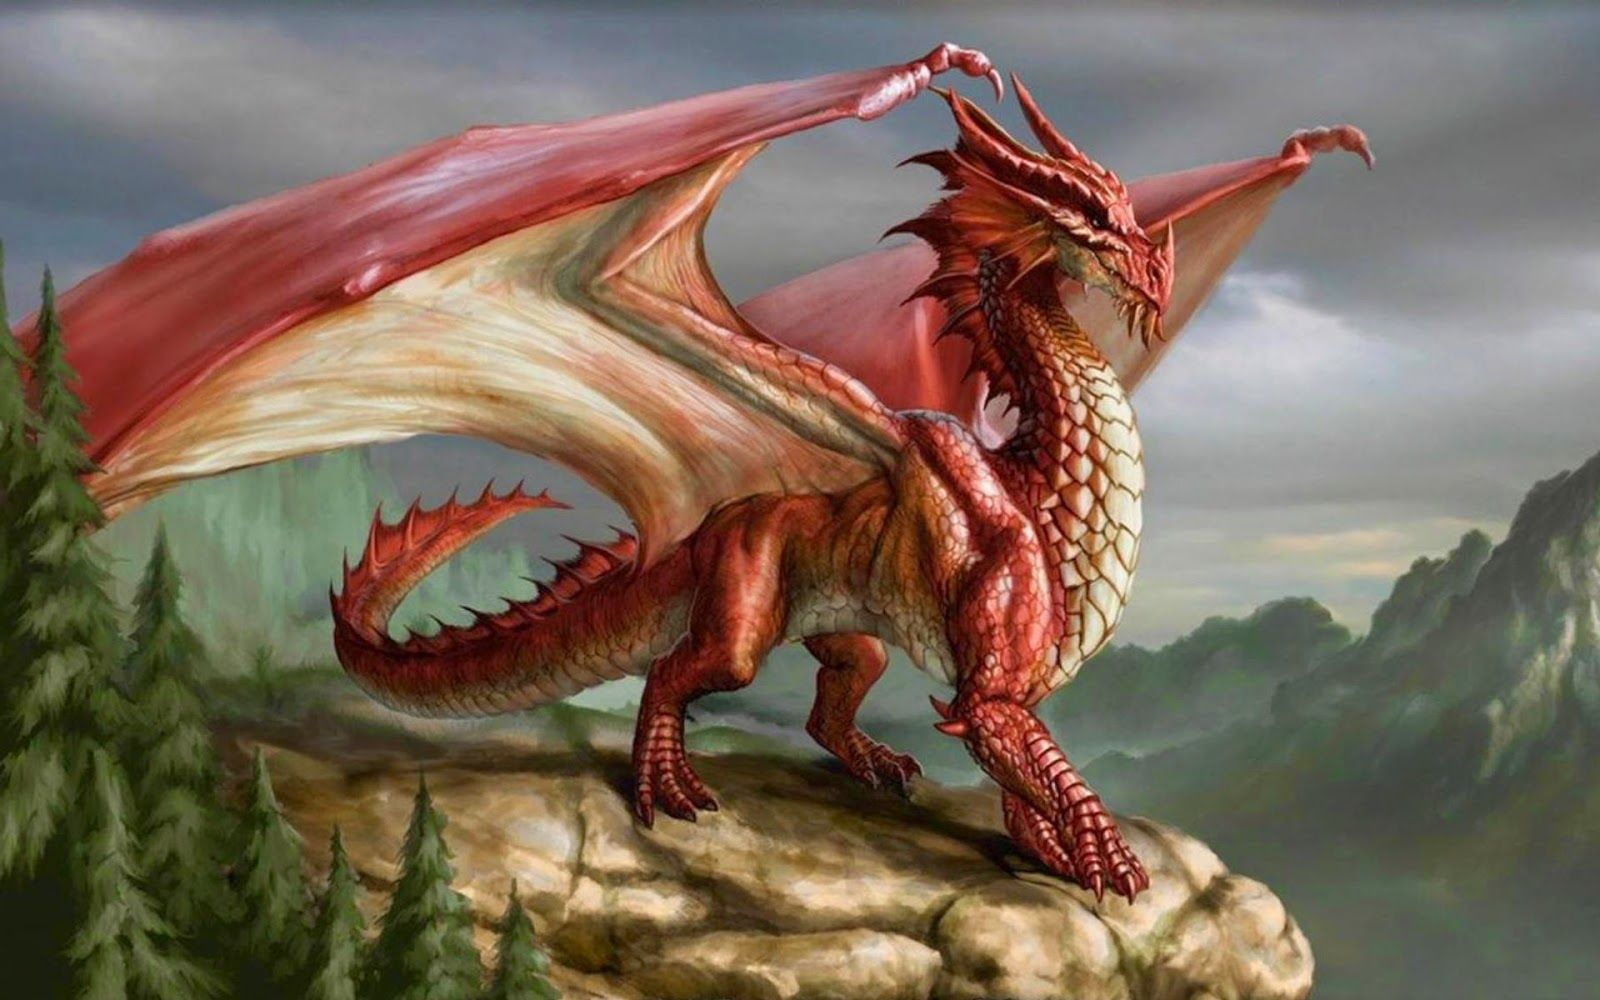 Top 50 HD Dragon Wallpapers, Images, Backgrounds, Desktop Wallpapers (High  Quality) | Dragones reales, Dragones, Dragón de fantasía